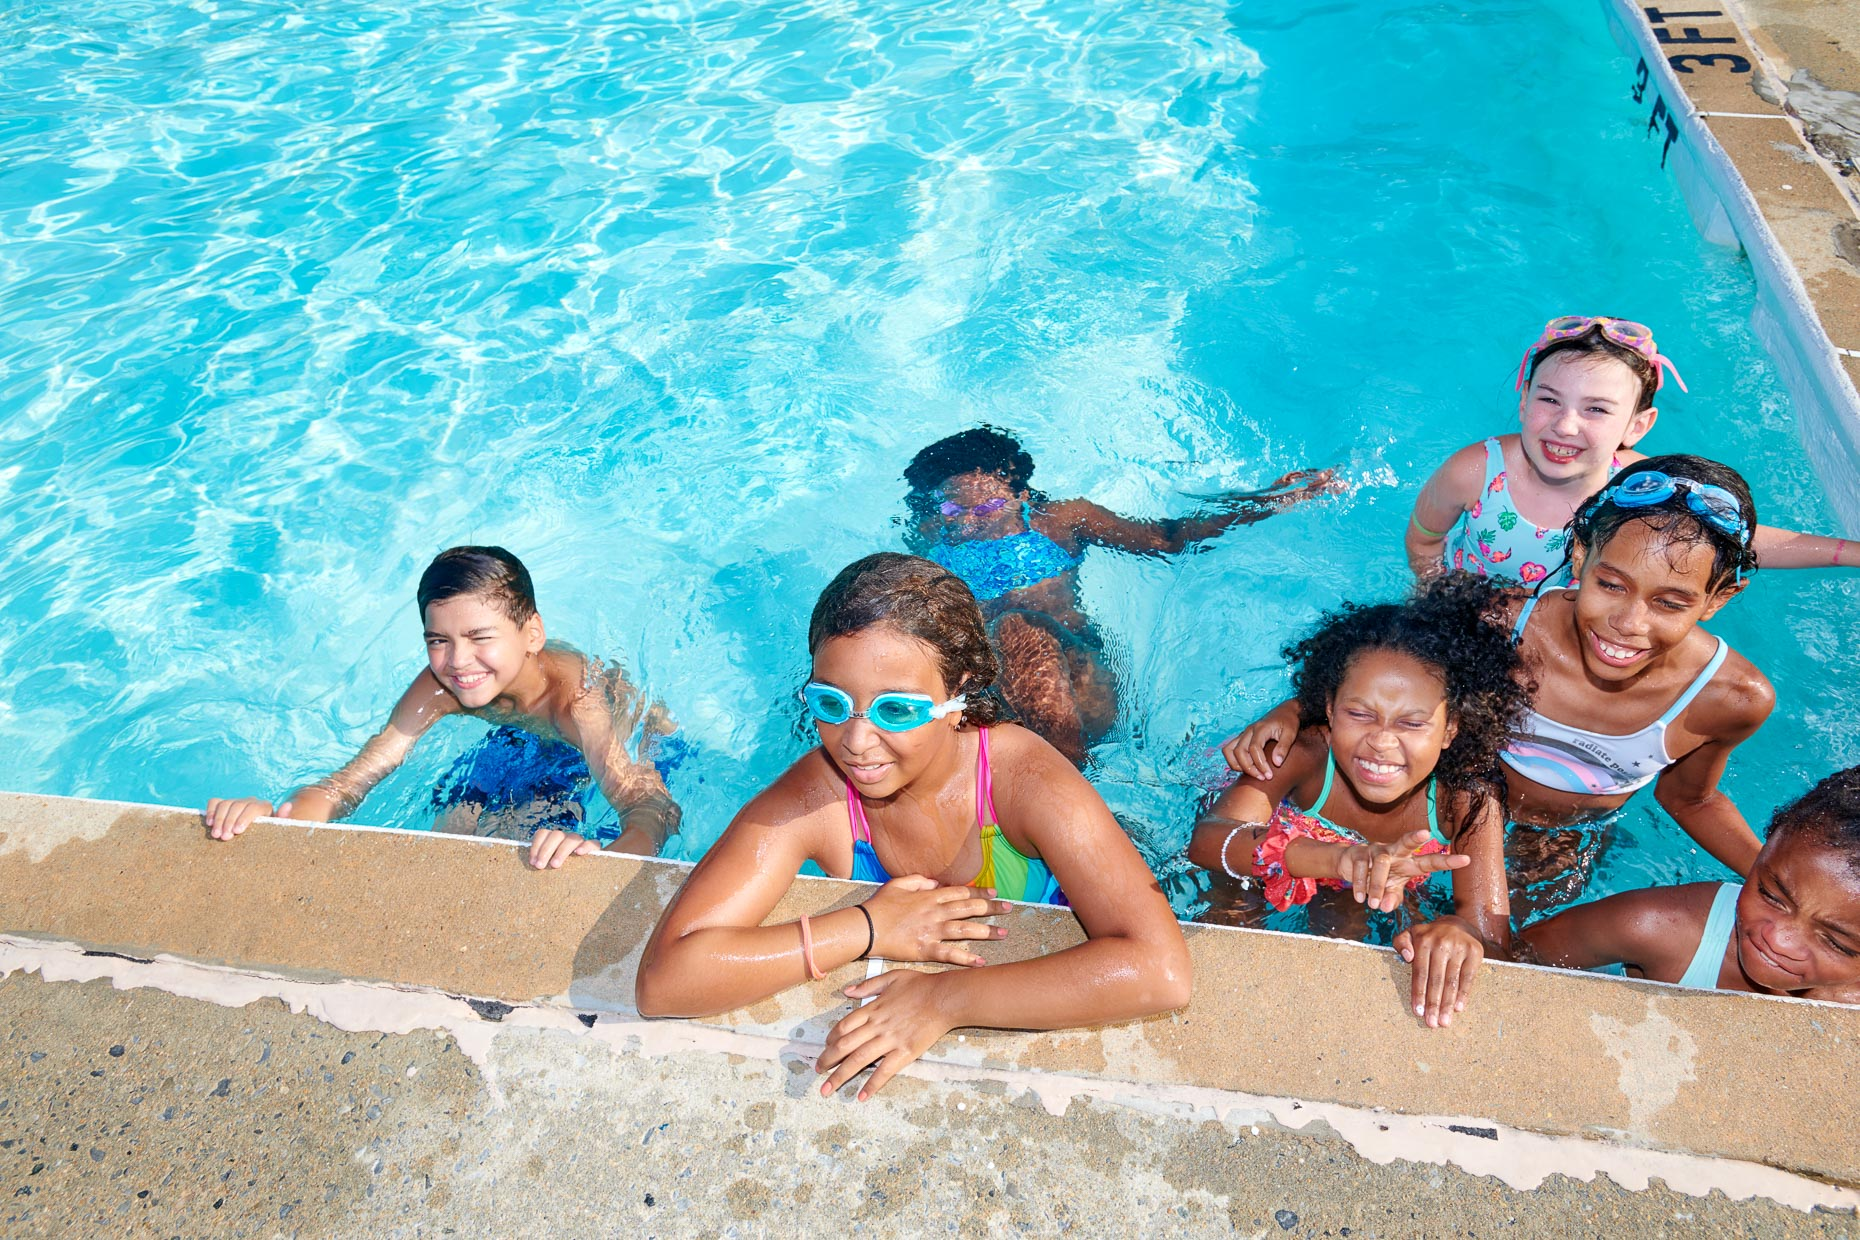 Kids in Pool | Appel Farm Advertising Campaign